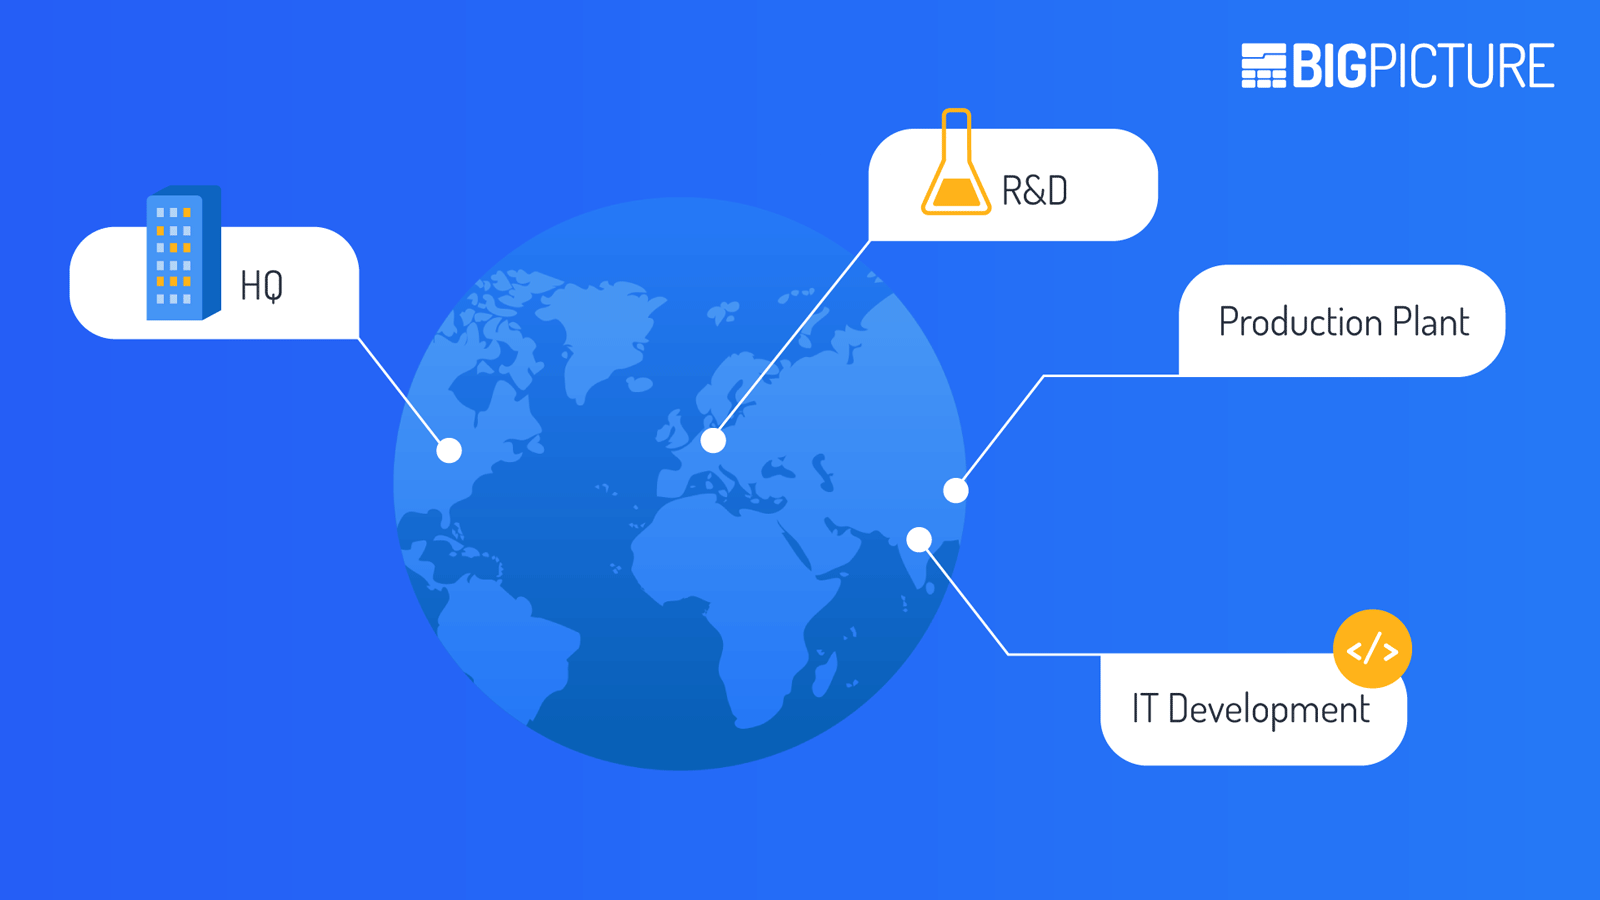 Distributed teams, HQ in America, R&D in Europe, IT development in India, manufacturing in China